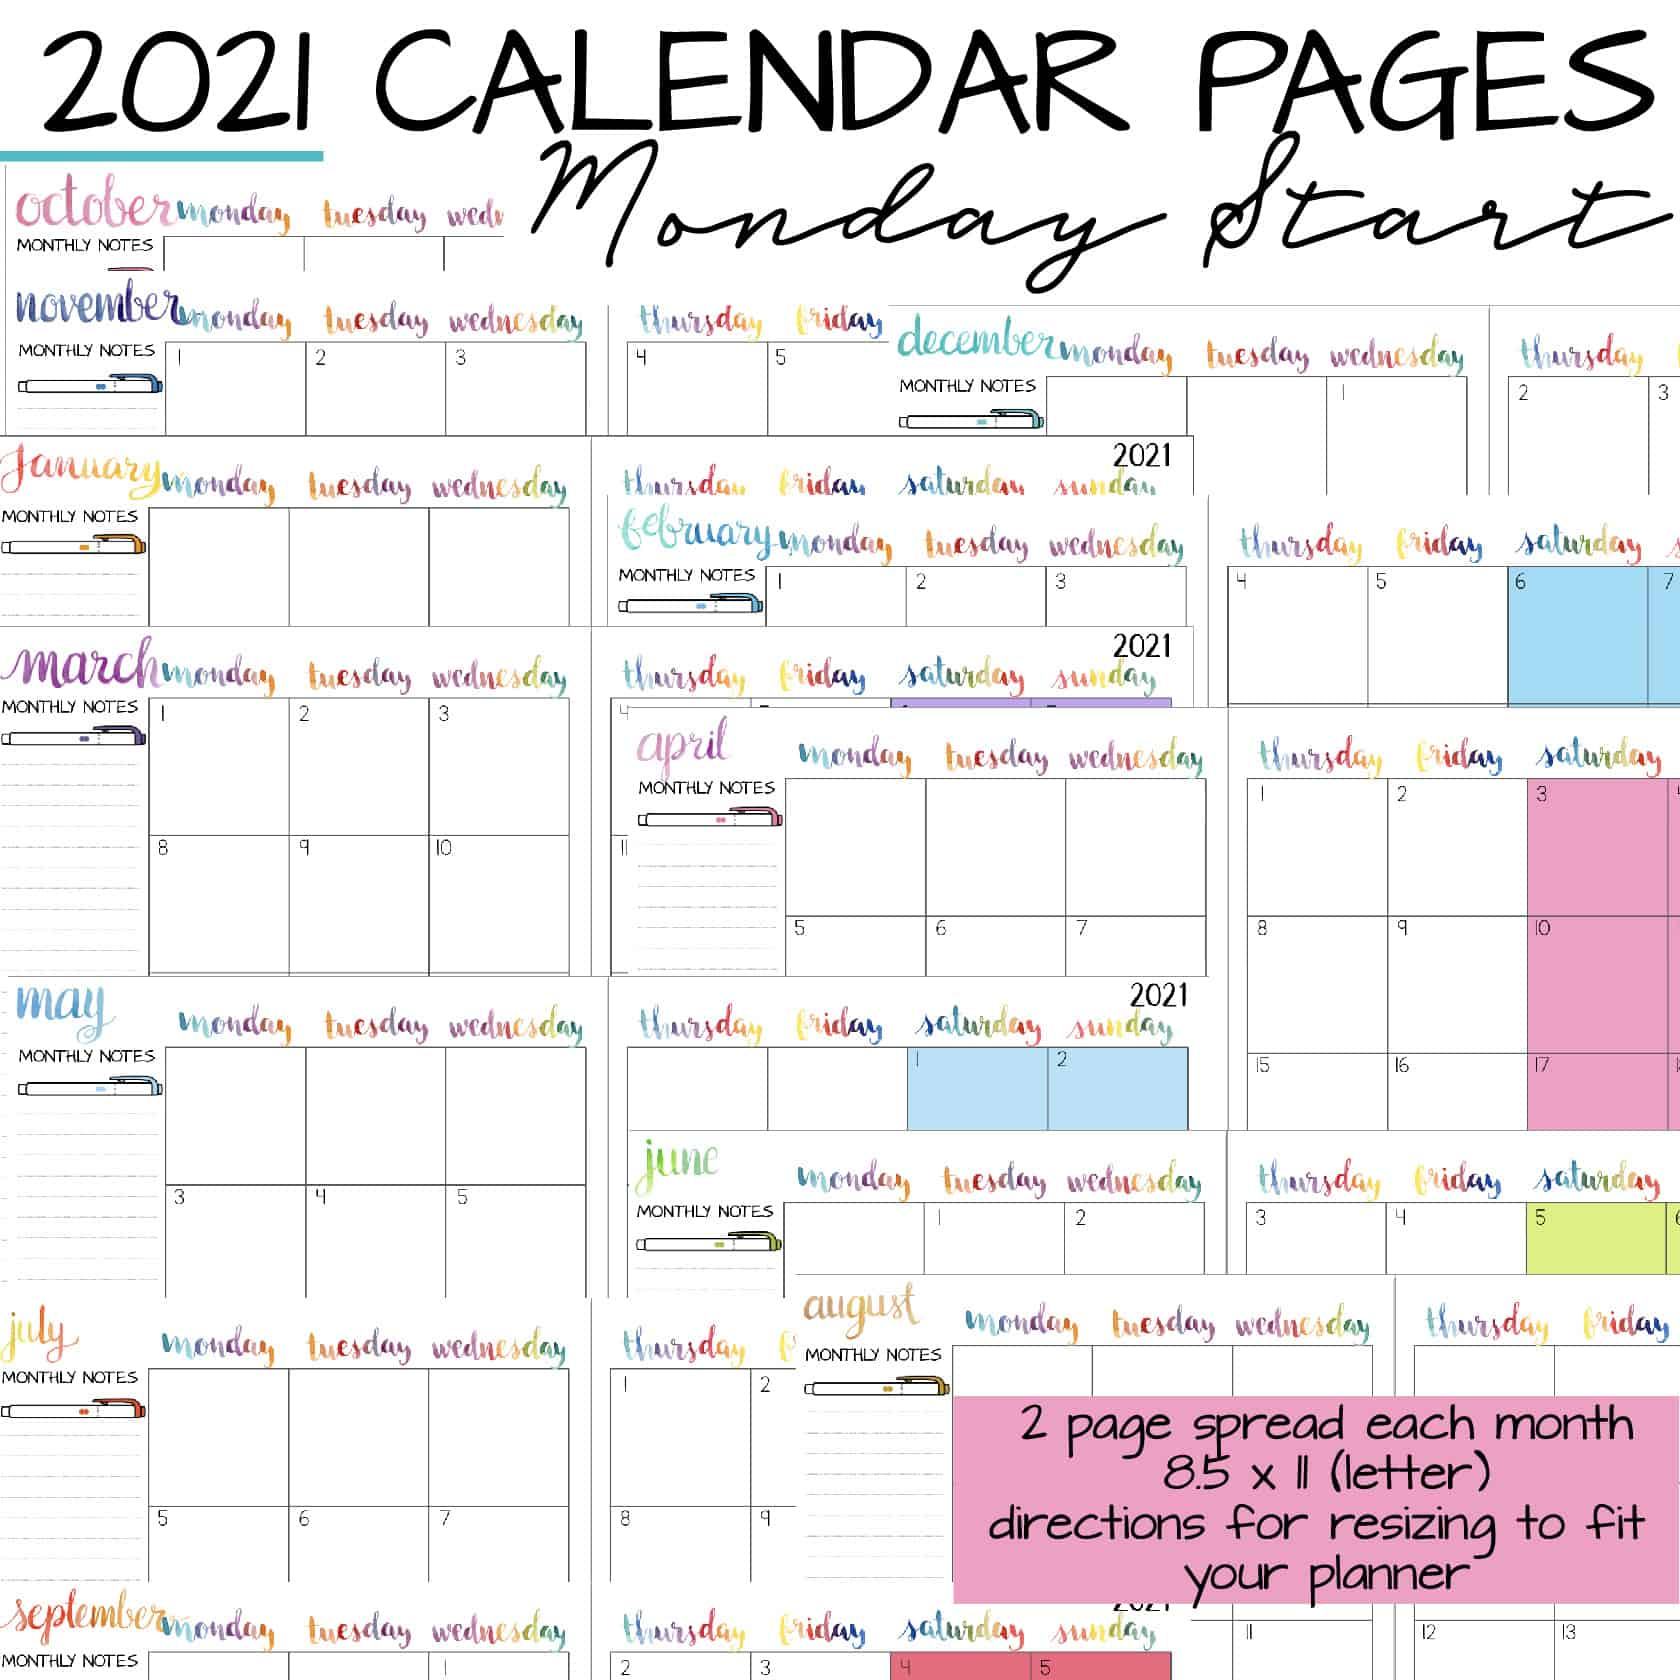 monthly calendar pages to print with Monday start